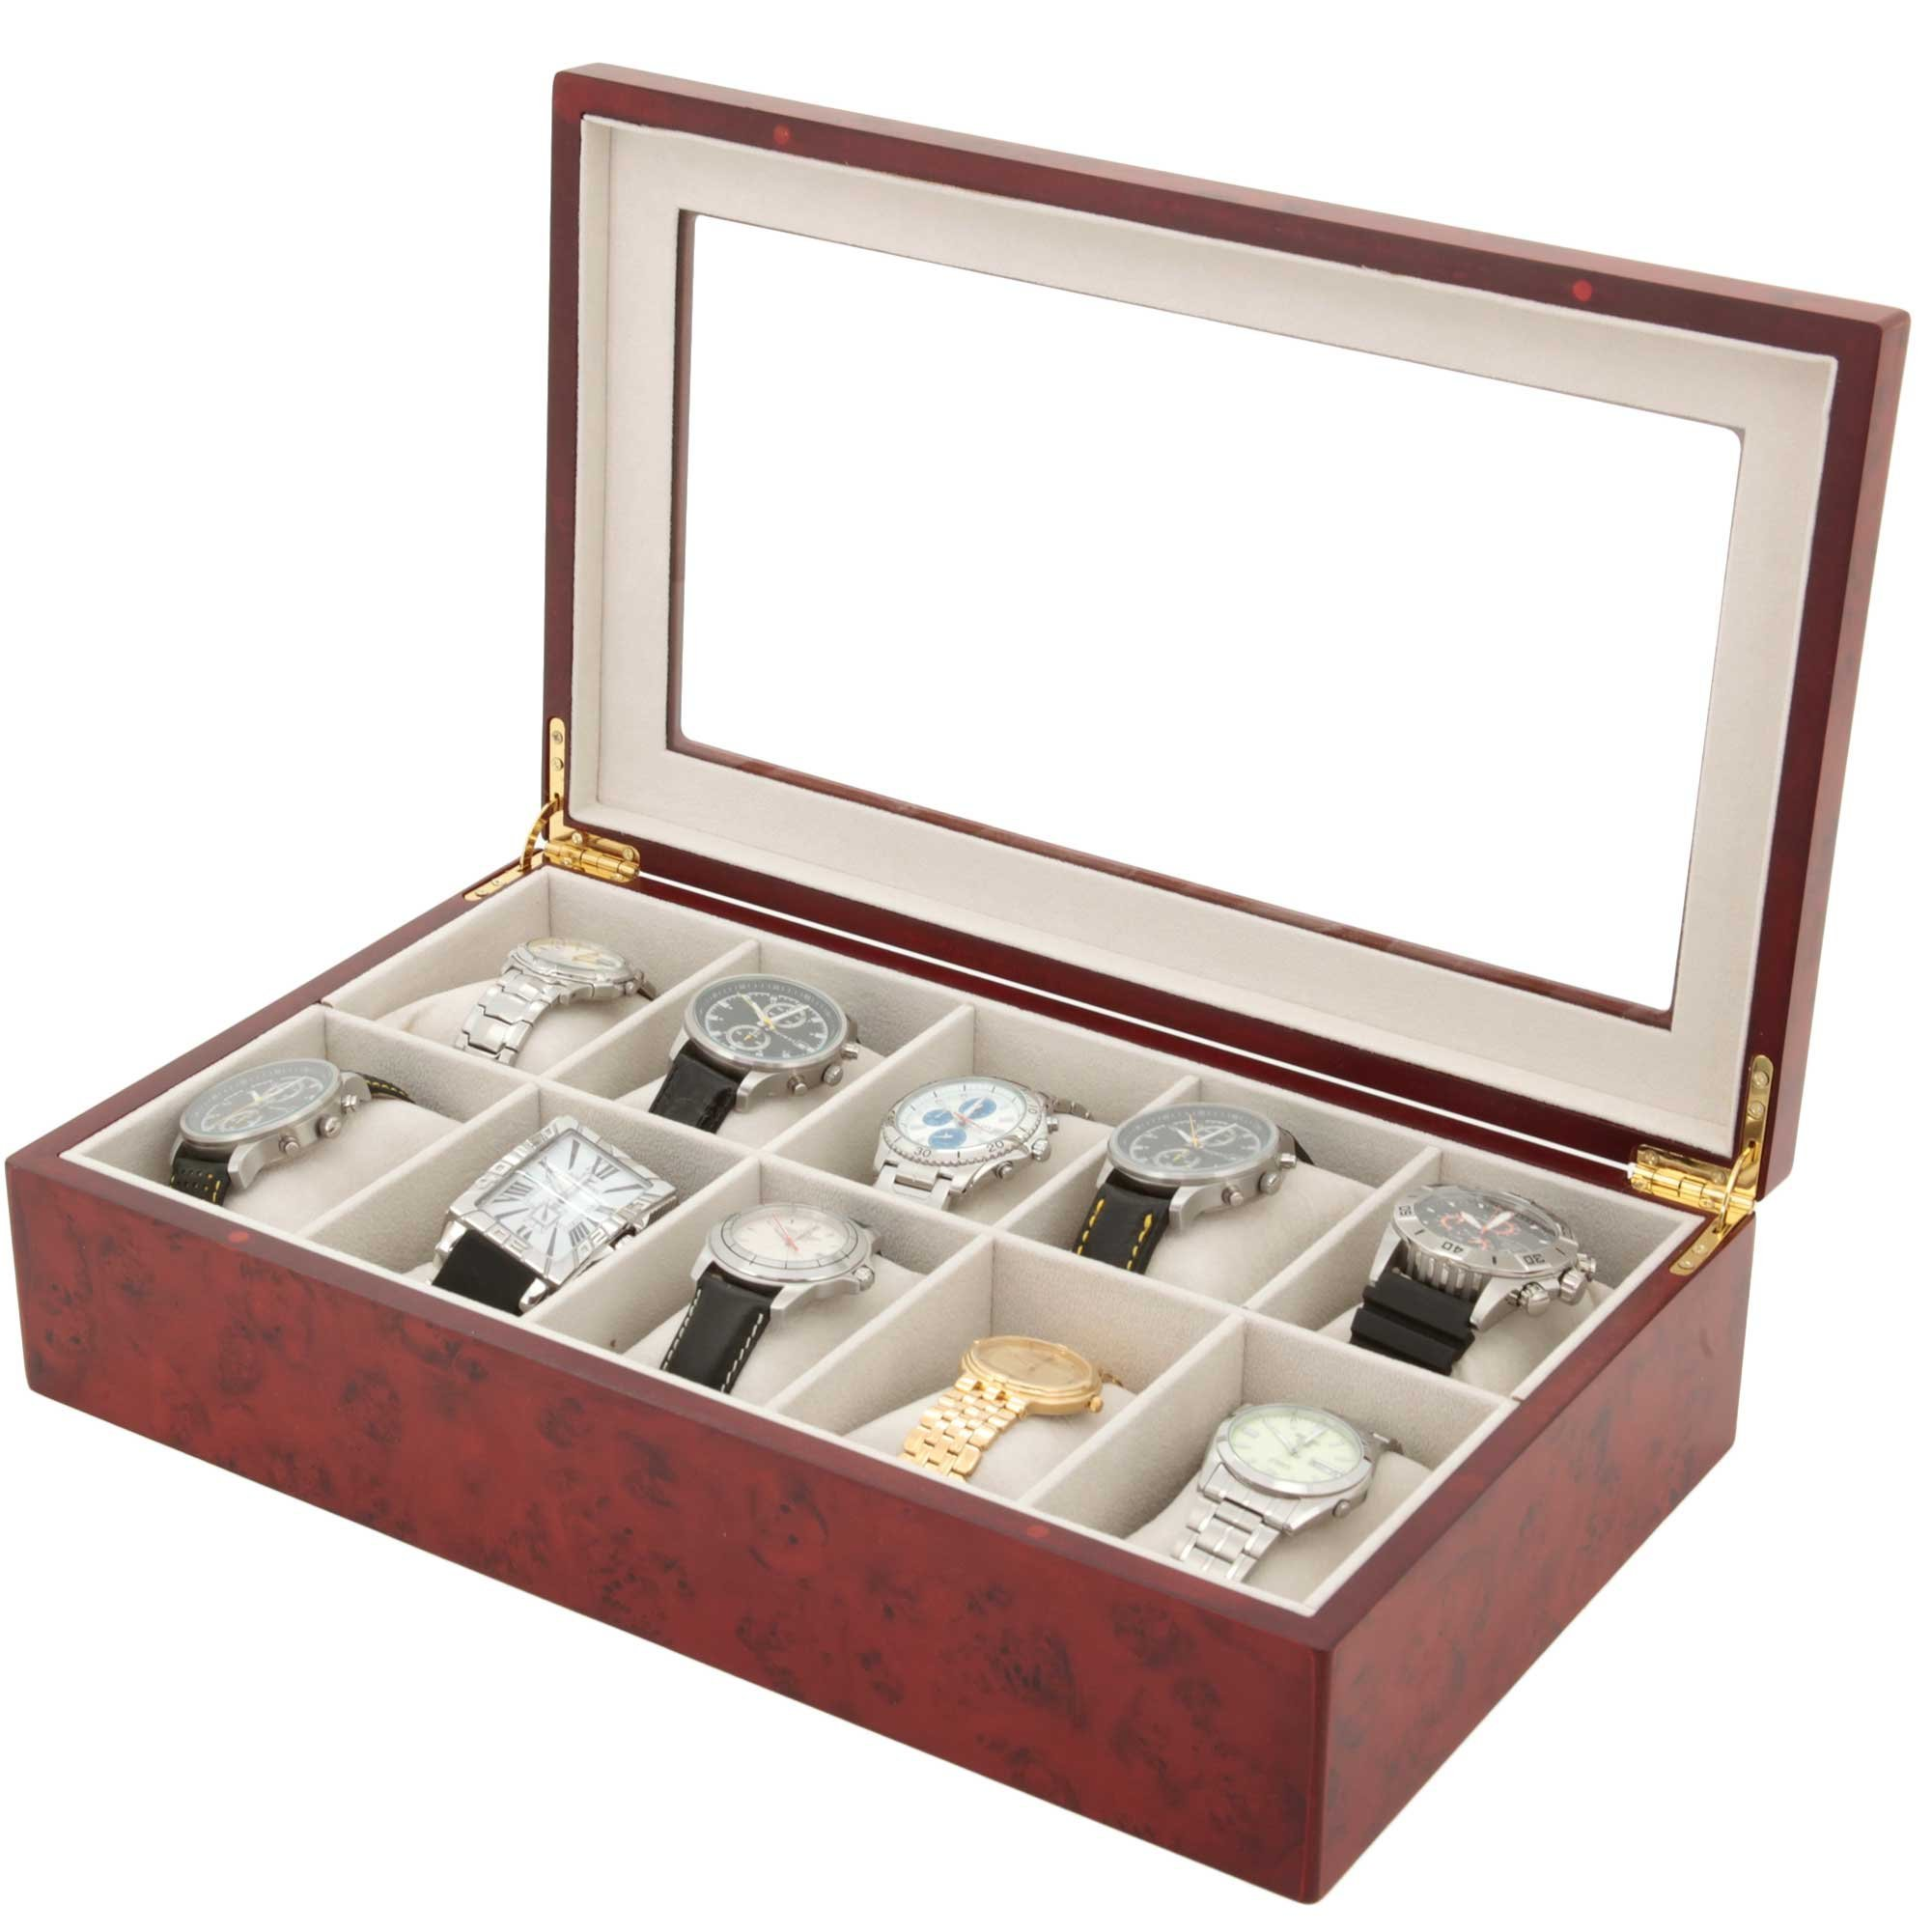 Watch Box for 10 Watches Wood Finish XL Extra Large Compartments Fits 63mm Soft Cushions Clearance Glass Window (Burlwood)